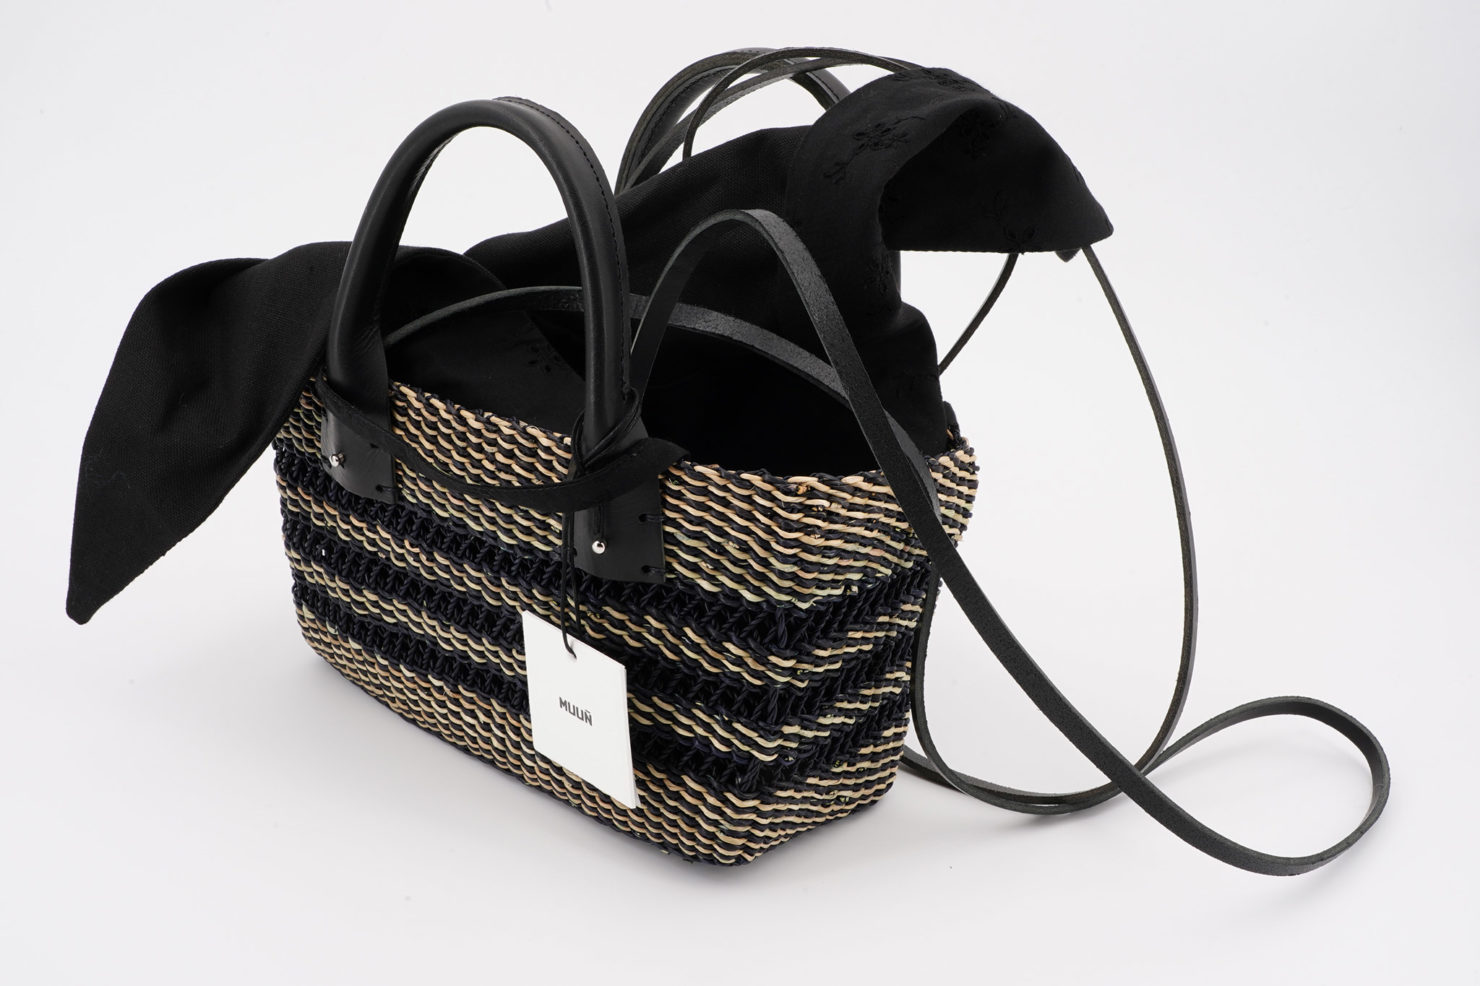 MINI CARRIE FLOR STRAW BAG WITH REMOVABLE POUCH MUUN OPEN